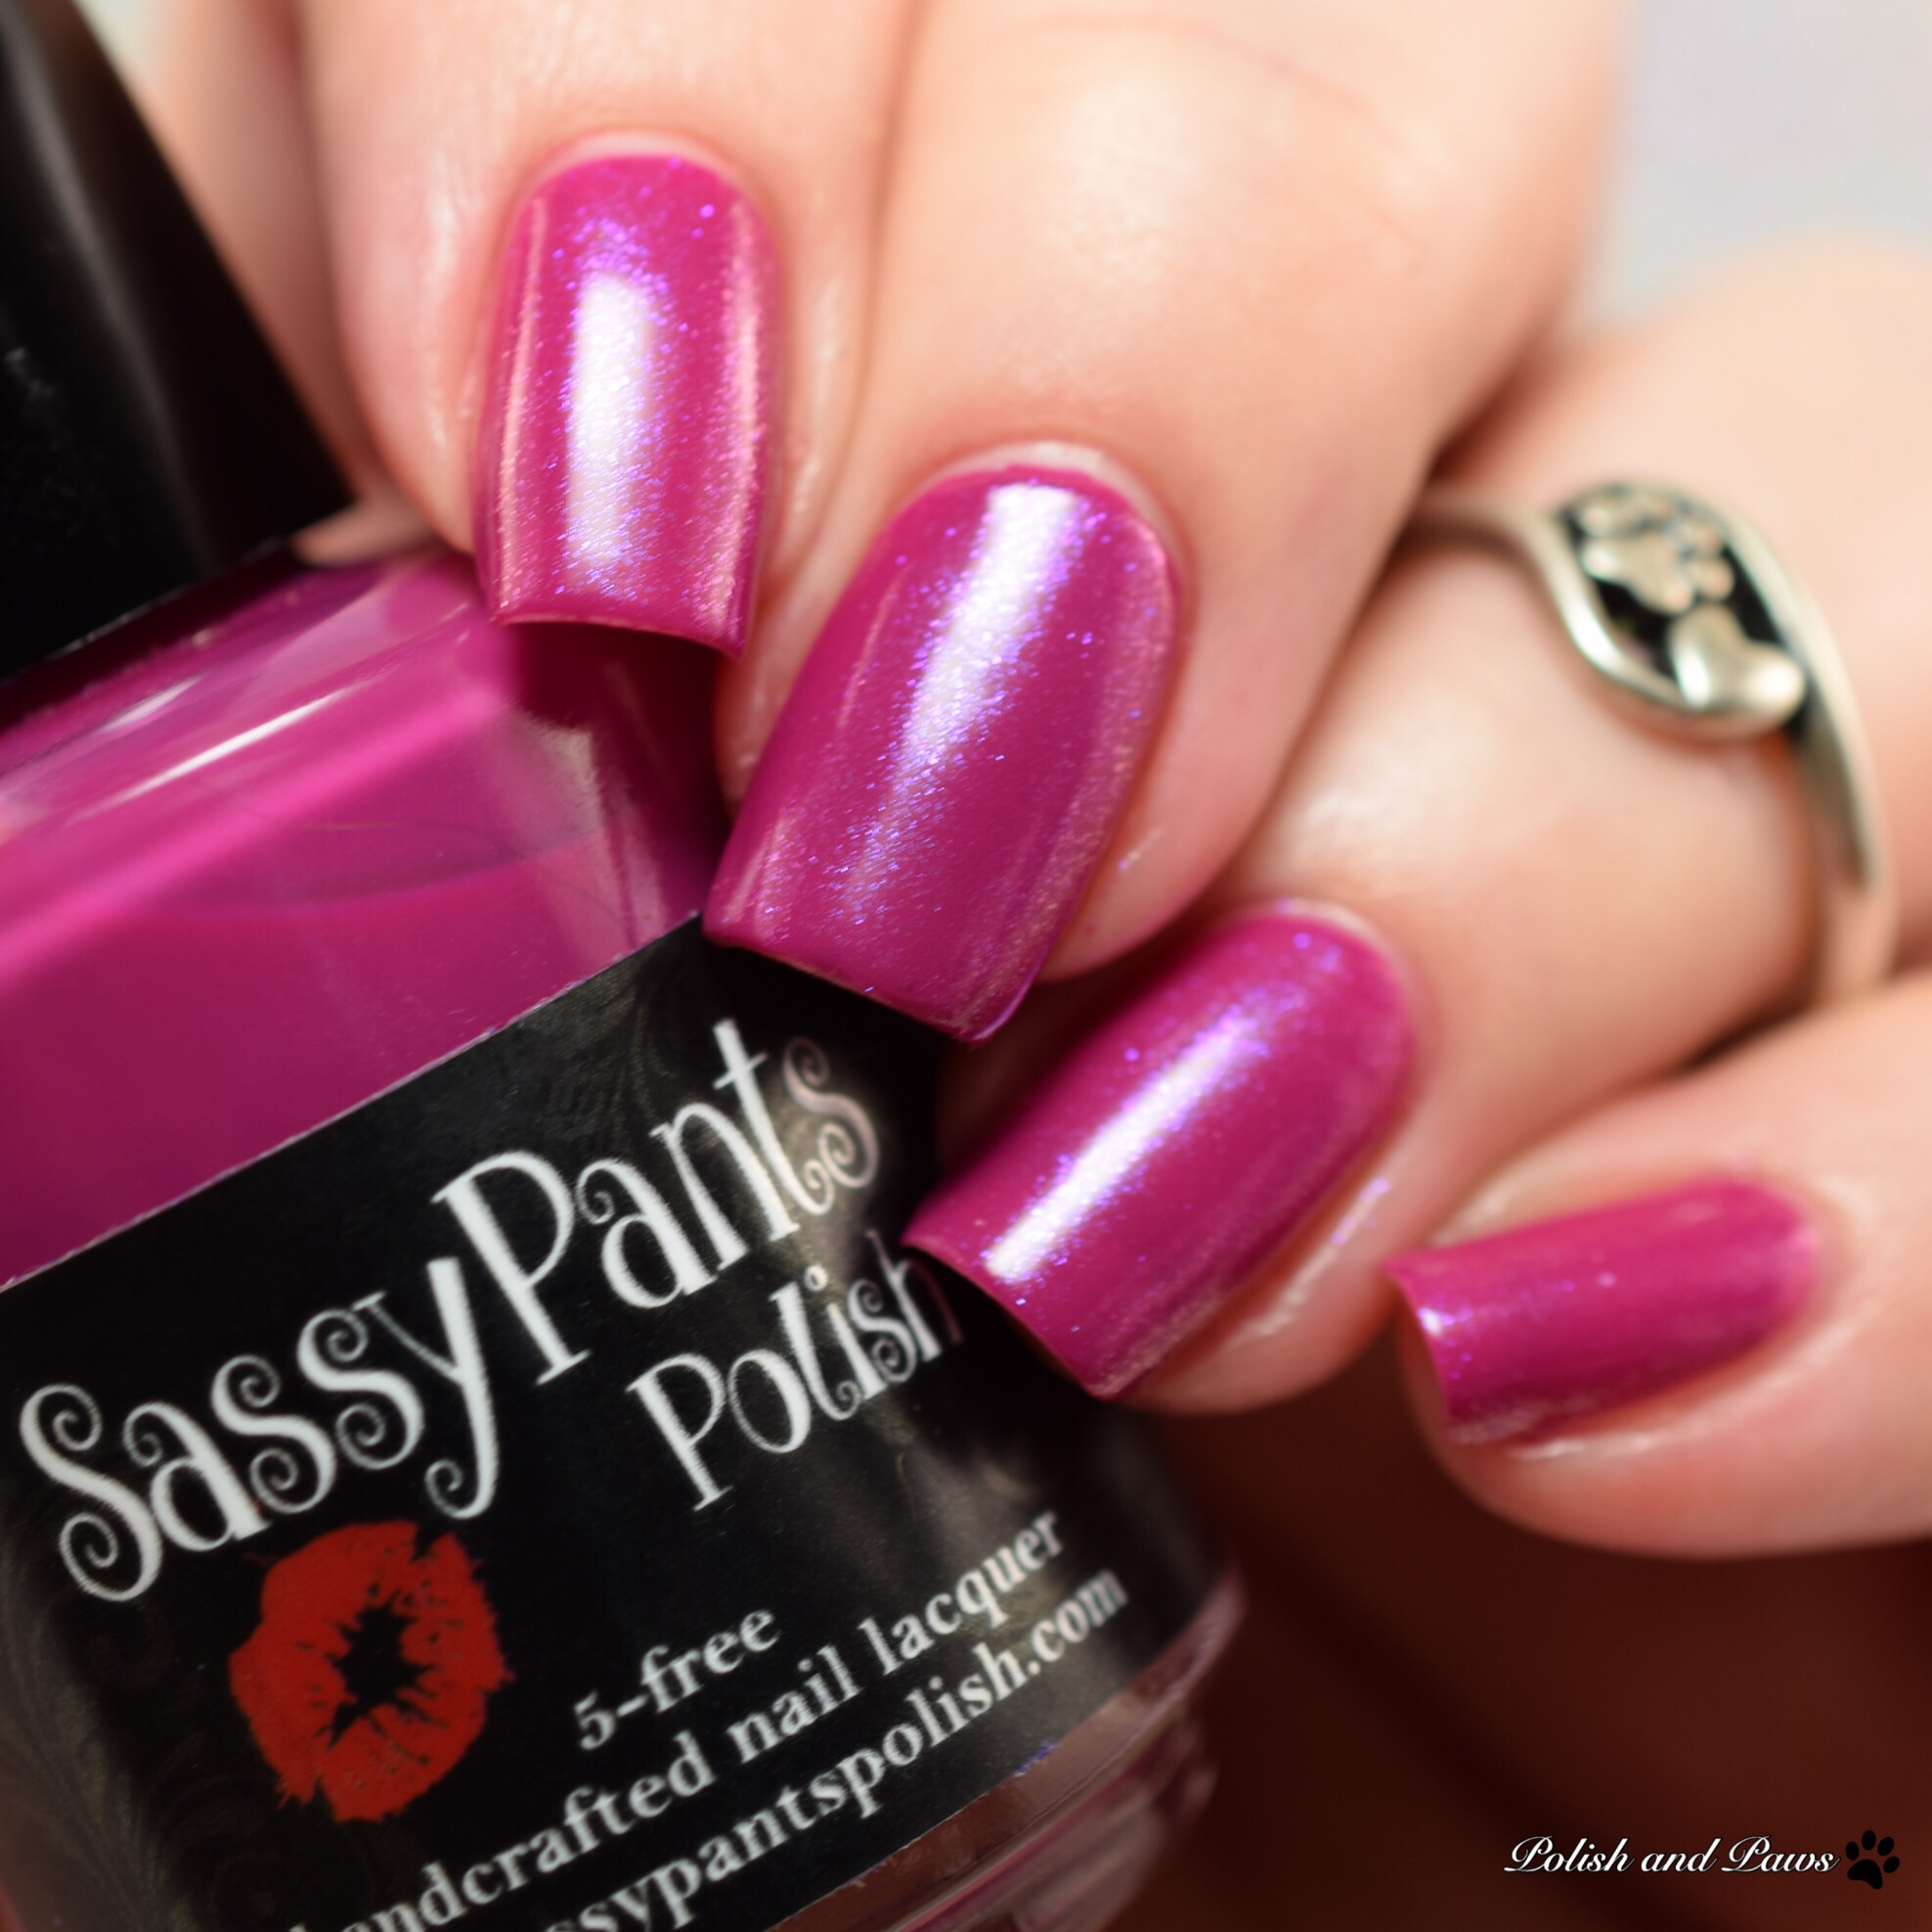 Sassy Pants Polish Forever Yours layered over Kiss & Make Up